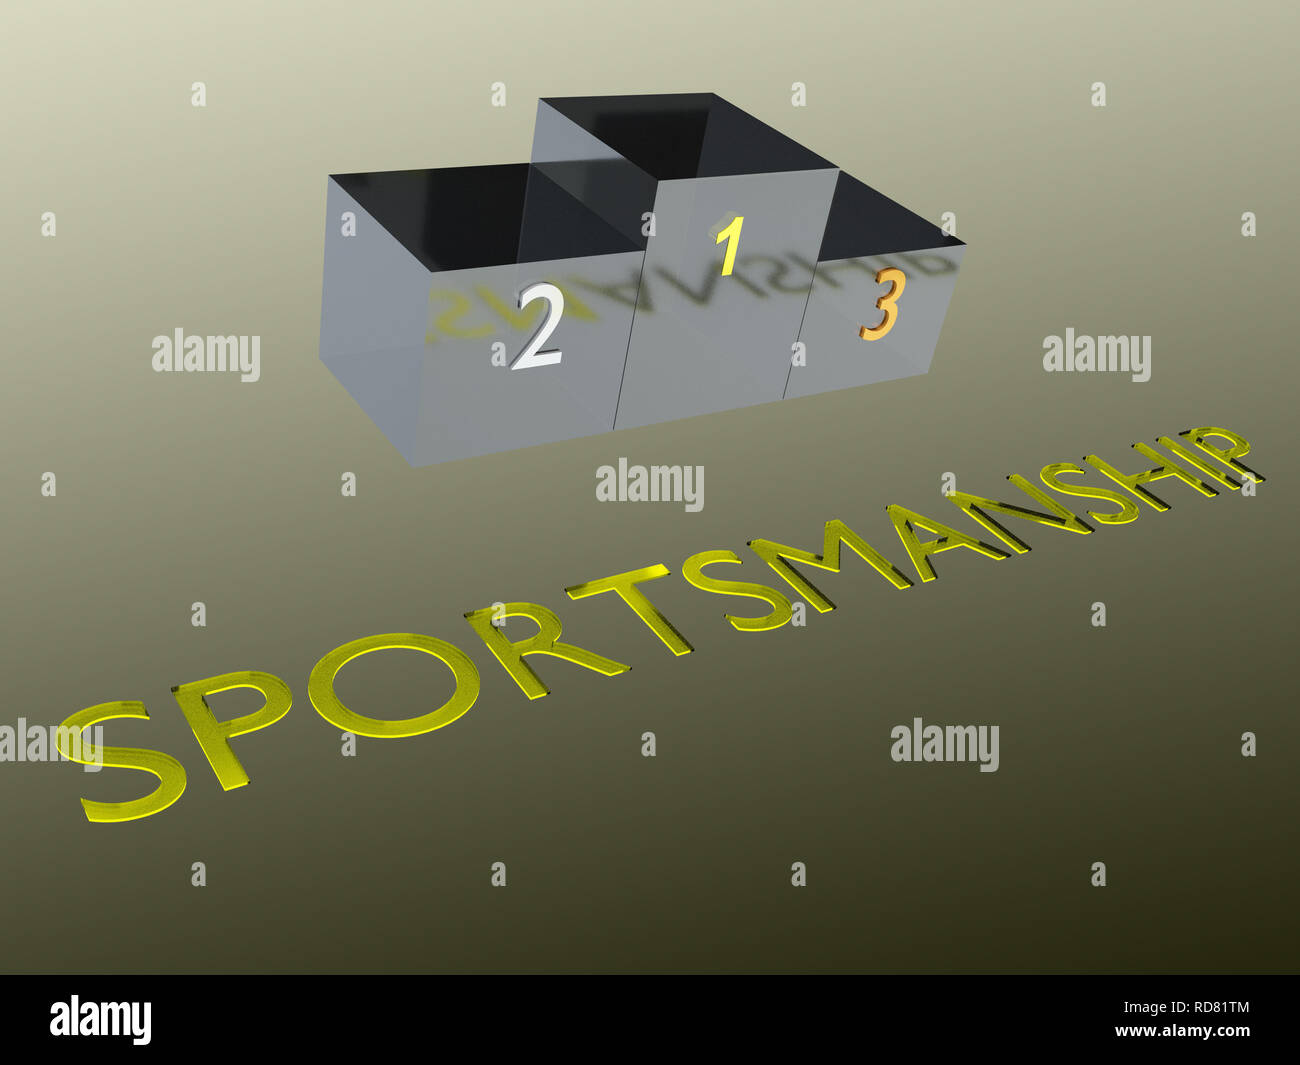 3D illustration of SPORTSMANSHIP title with a podium as a background - Stock Image